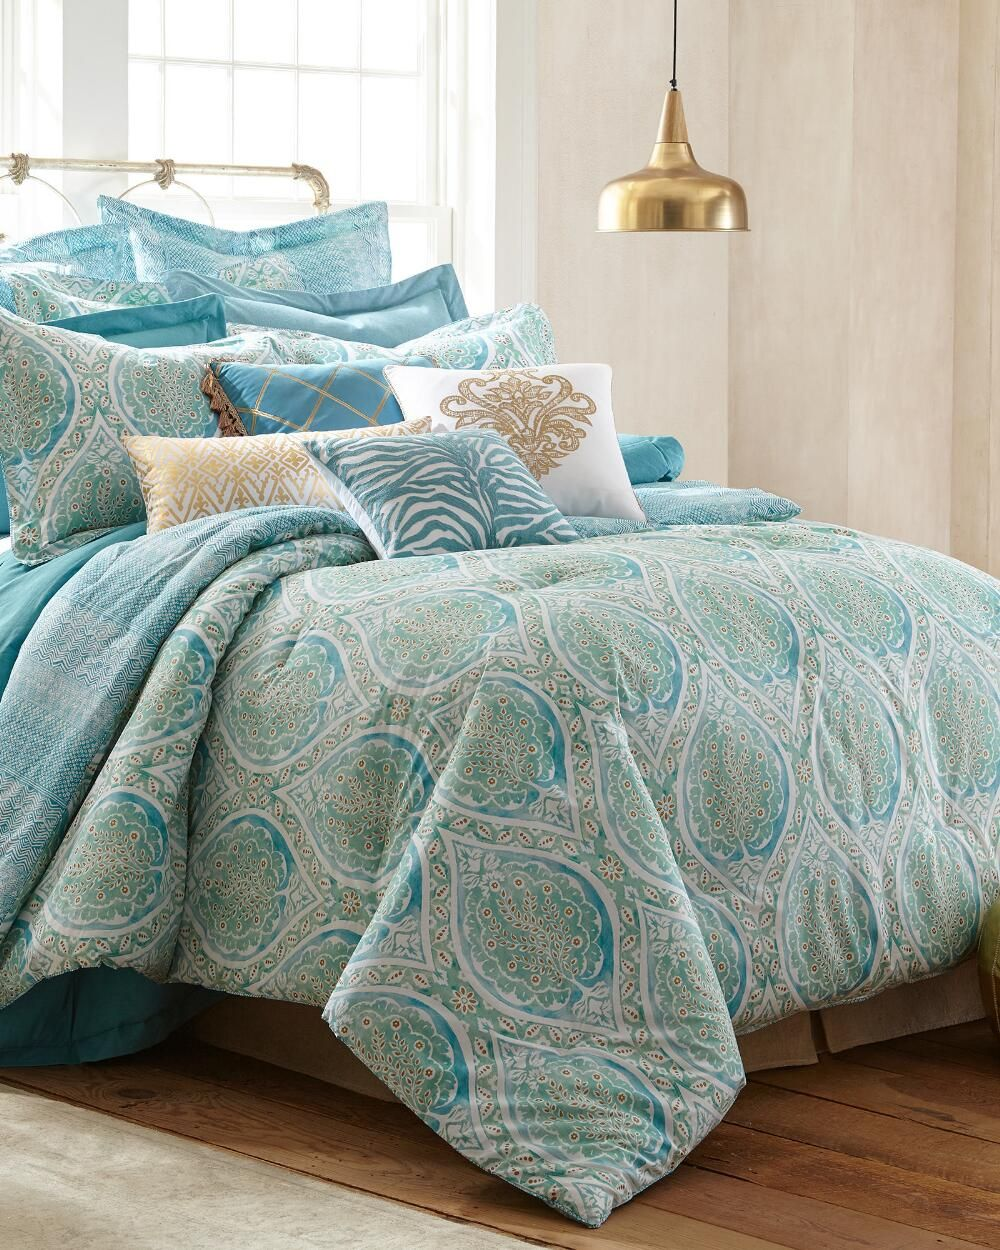 Stein mart bathroom accessories - Exclusively Ours 5 Piece Viceroy Comforter Set Print Comforters Bedding Bed Bath